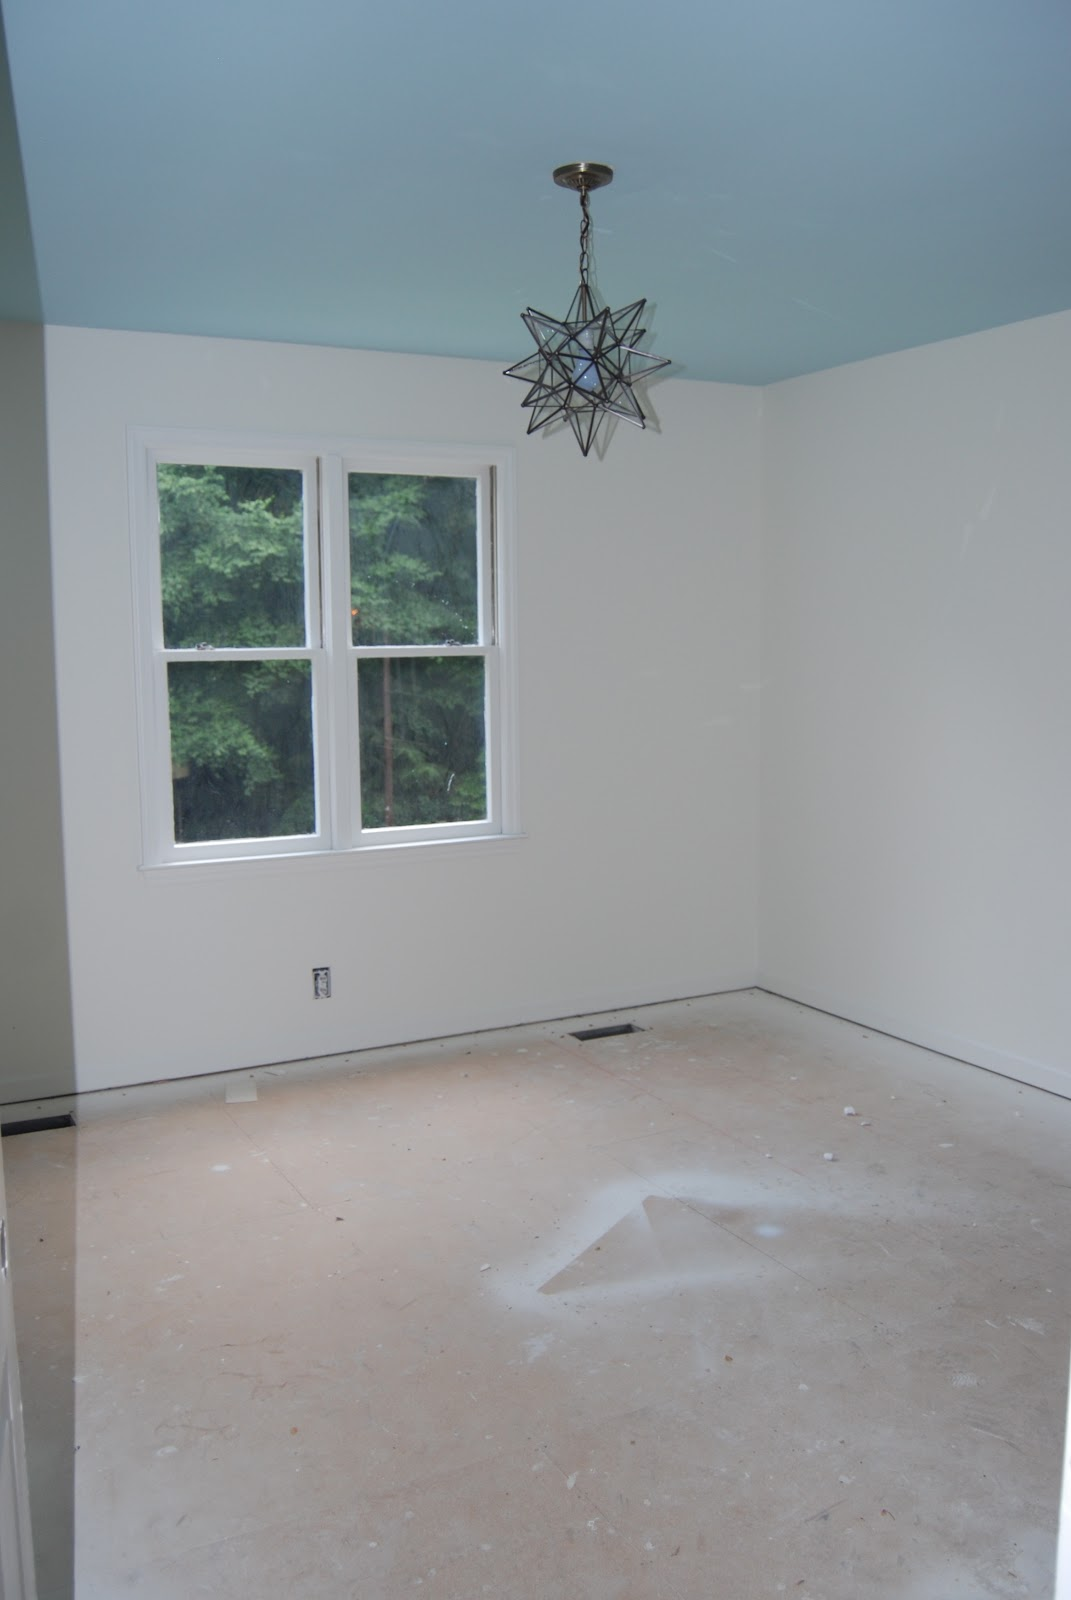 Rob s room painted bm s 50 50 linen white decorator s white ceiling